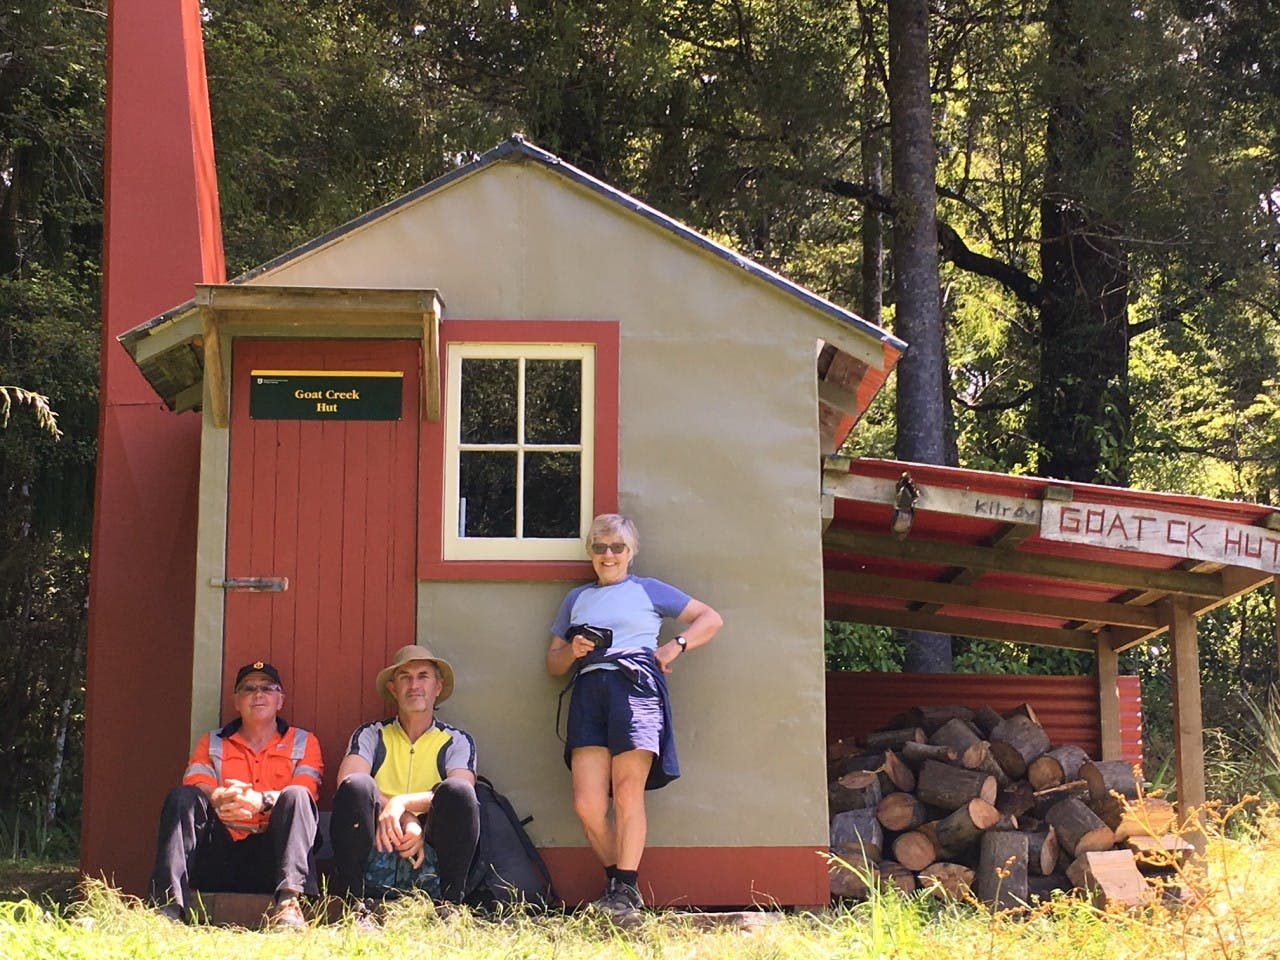 Goat Creek Hut, looking better than ever with a new coat of paint. Photo: Buller Tramping Club